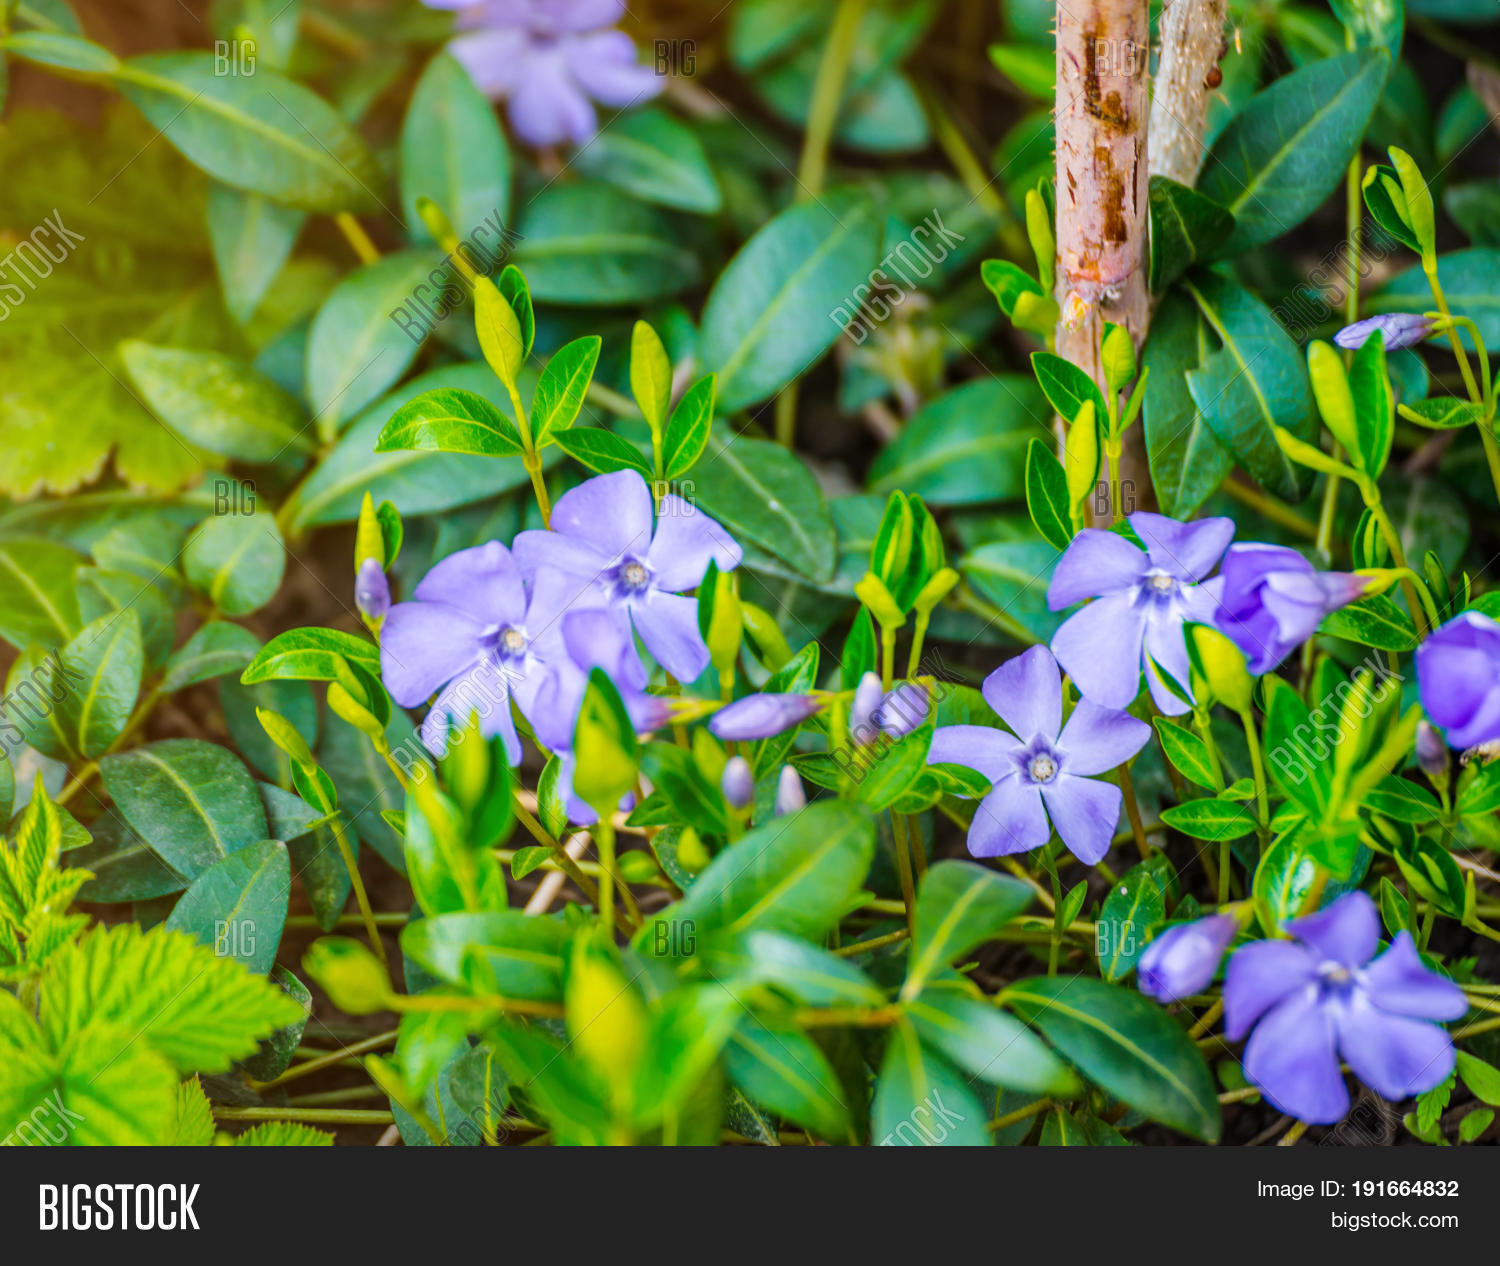 Periwinkle plant green image photo free trial bigstock periwinkle plant with green leaves and blue flowers five petalled blue periwinkle flower izmirmasajfo